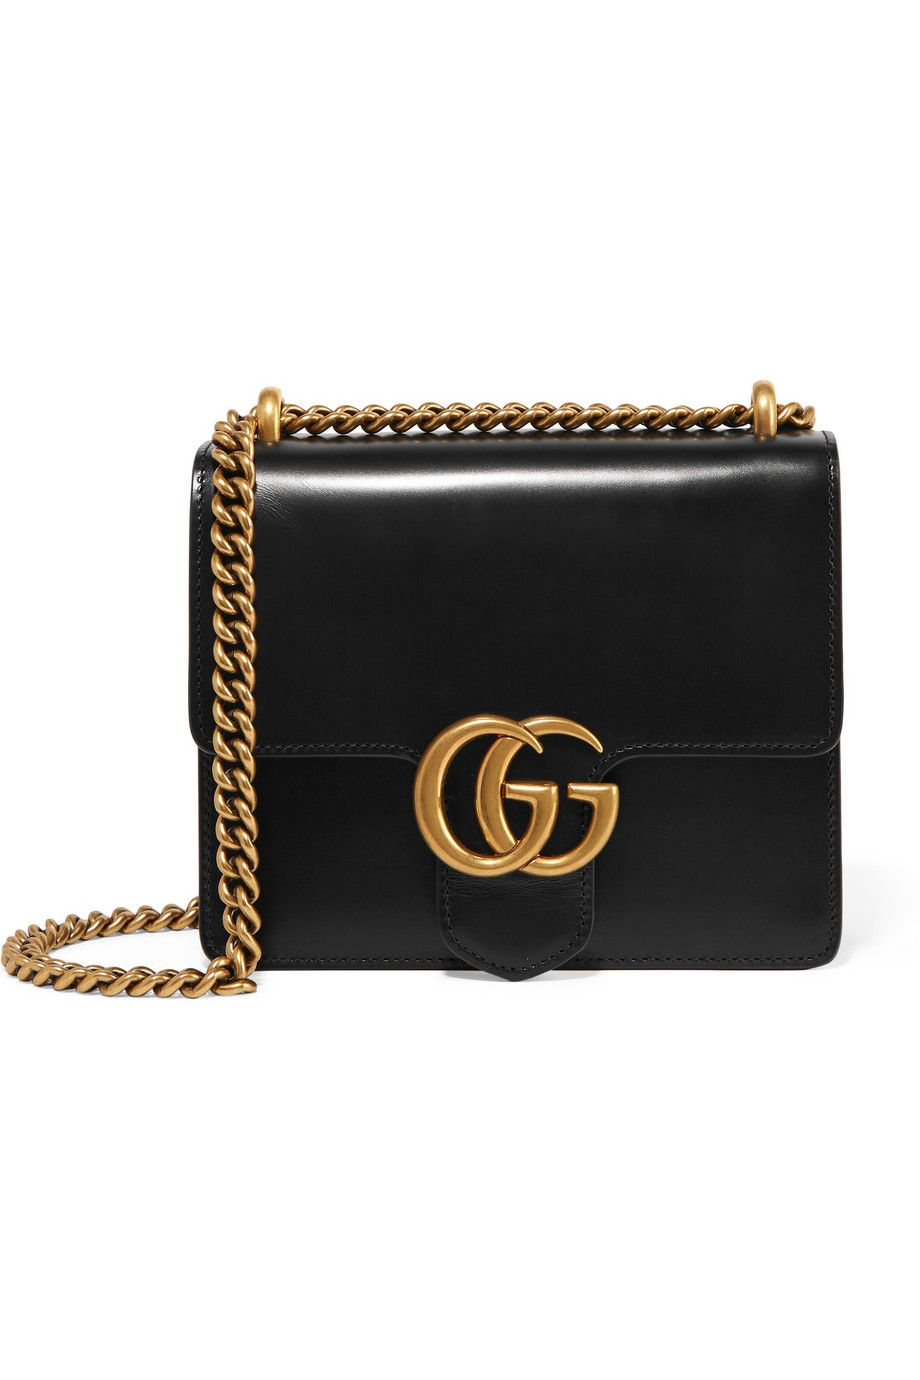 2258119f2d1072 GUCCI GG Marmont mini leather shoulder bag Black leather (Calf) Push  lock-fastening front flap Comes with dust bag Weighs approximately 1.1lbs/  0.5kg Made ...